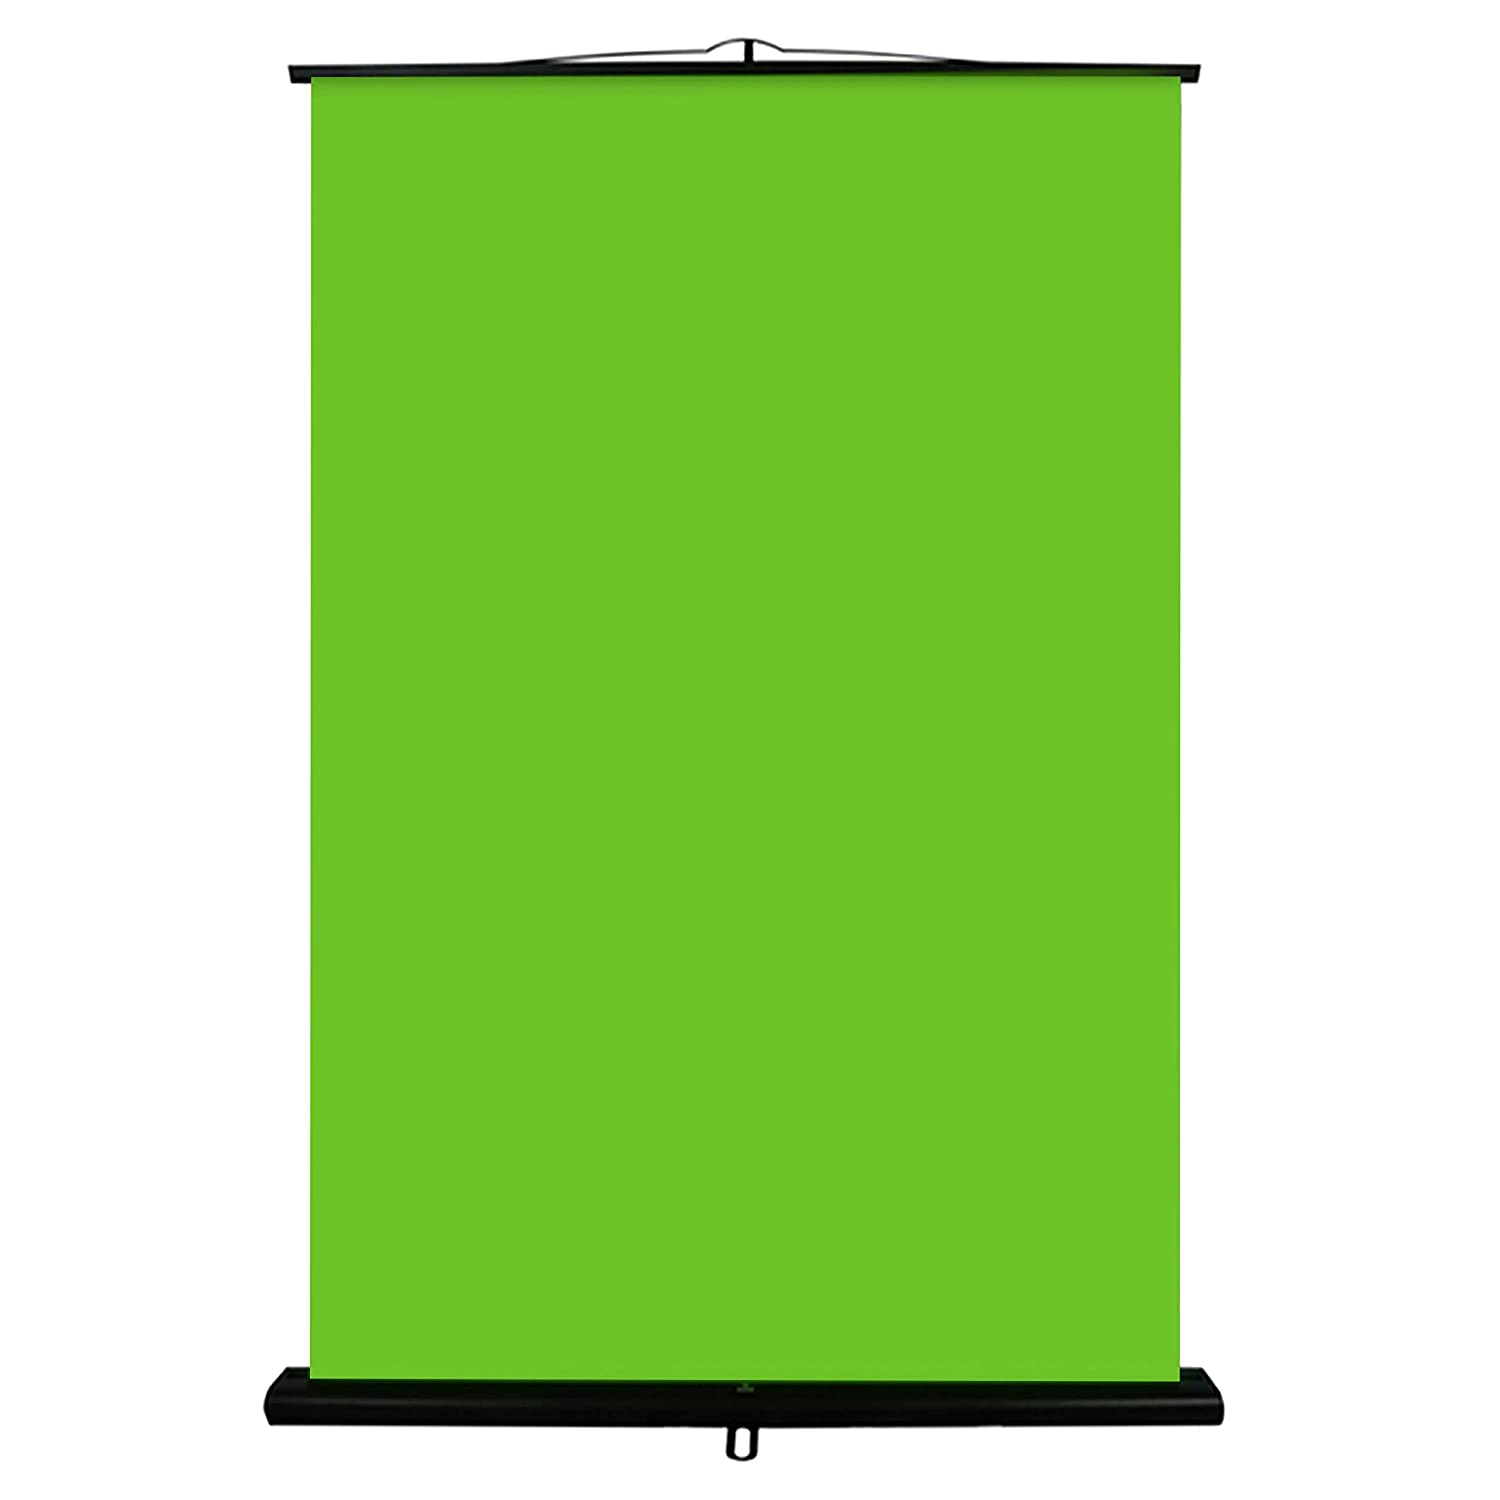 "Valera Creator 95: Collapsible Green Screen for Streaming | 75"" x 58""  Screen Area 